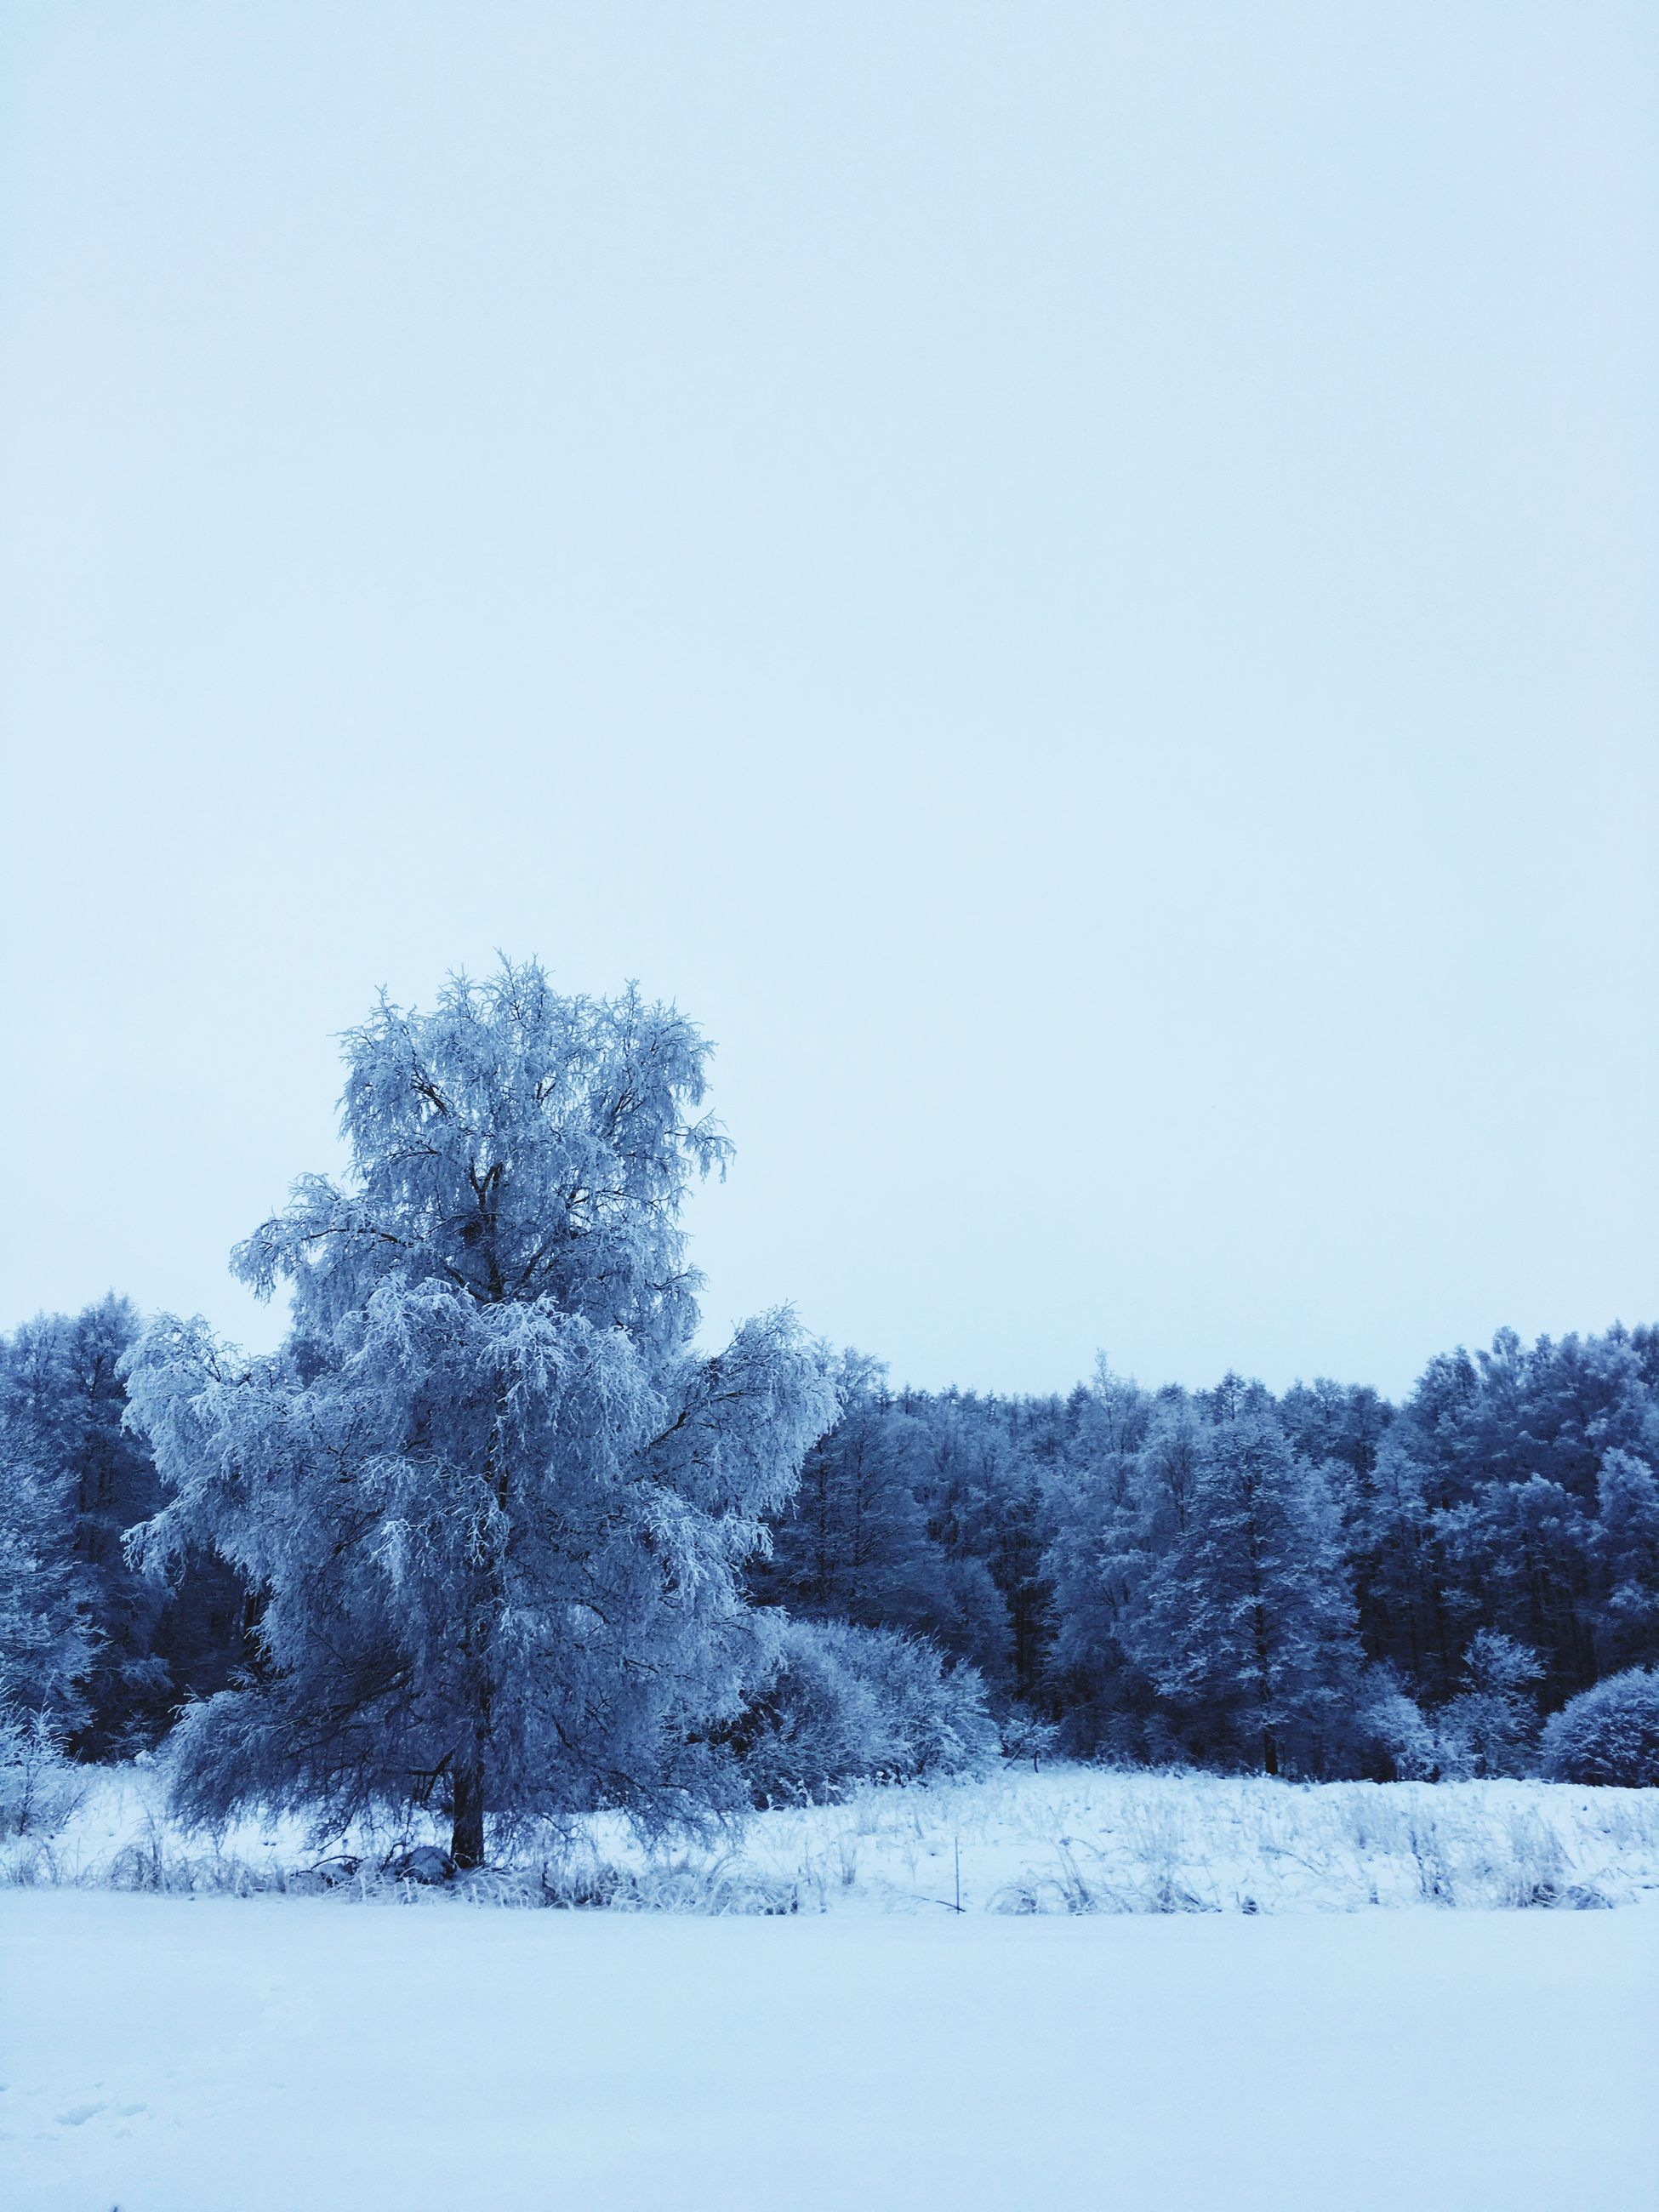 snow, winter, cold temperature, clear sky, season, tree, tranquil scene, copy space, tranquility, landscape, weather, beauty in nature, scenics, covering, nature, white color, field, non-urban scene, frozen, snow covered